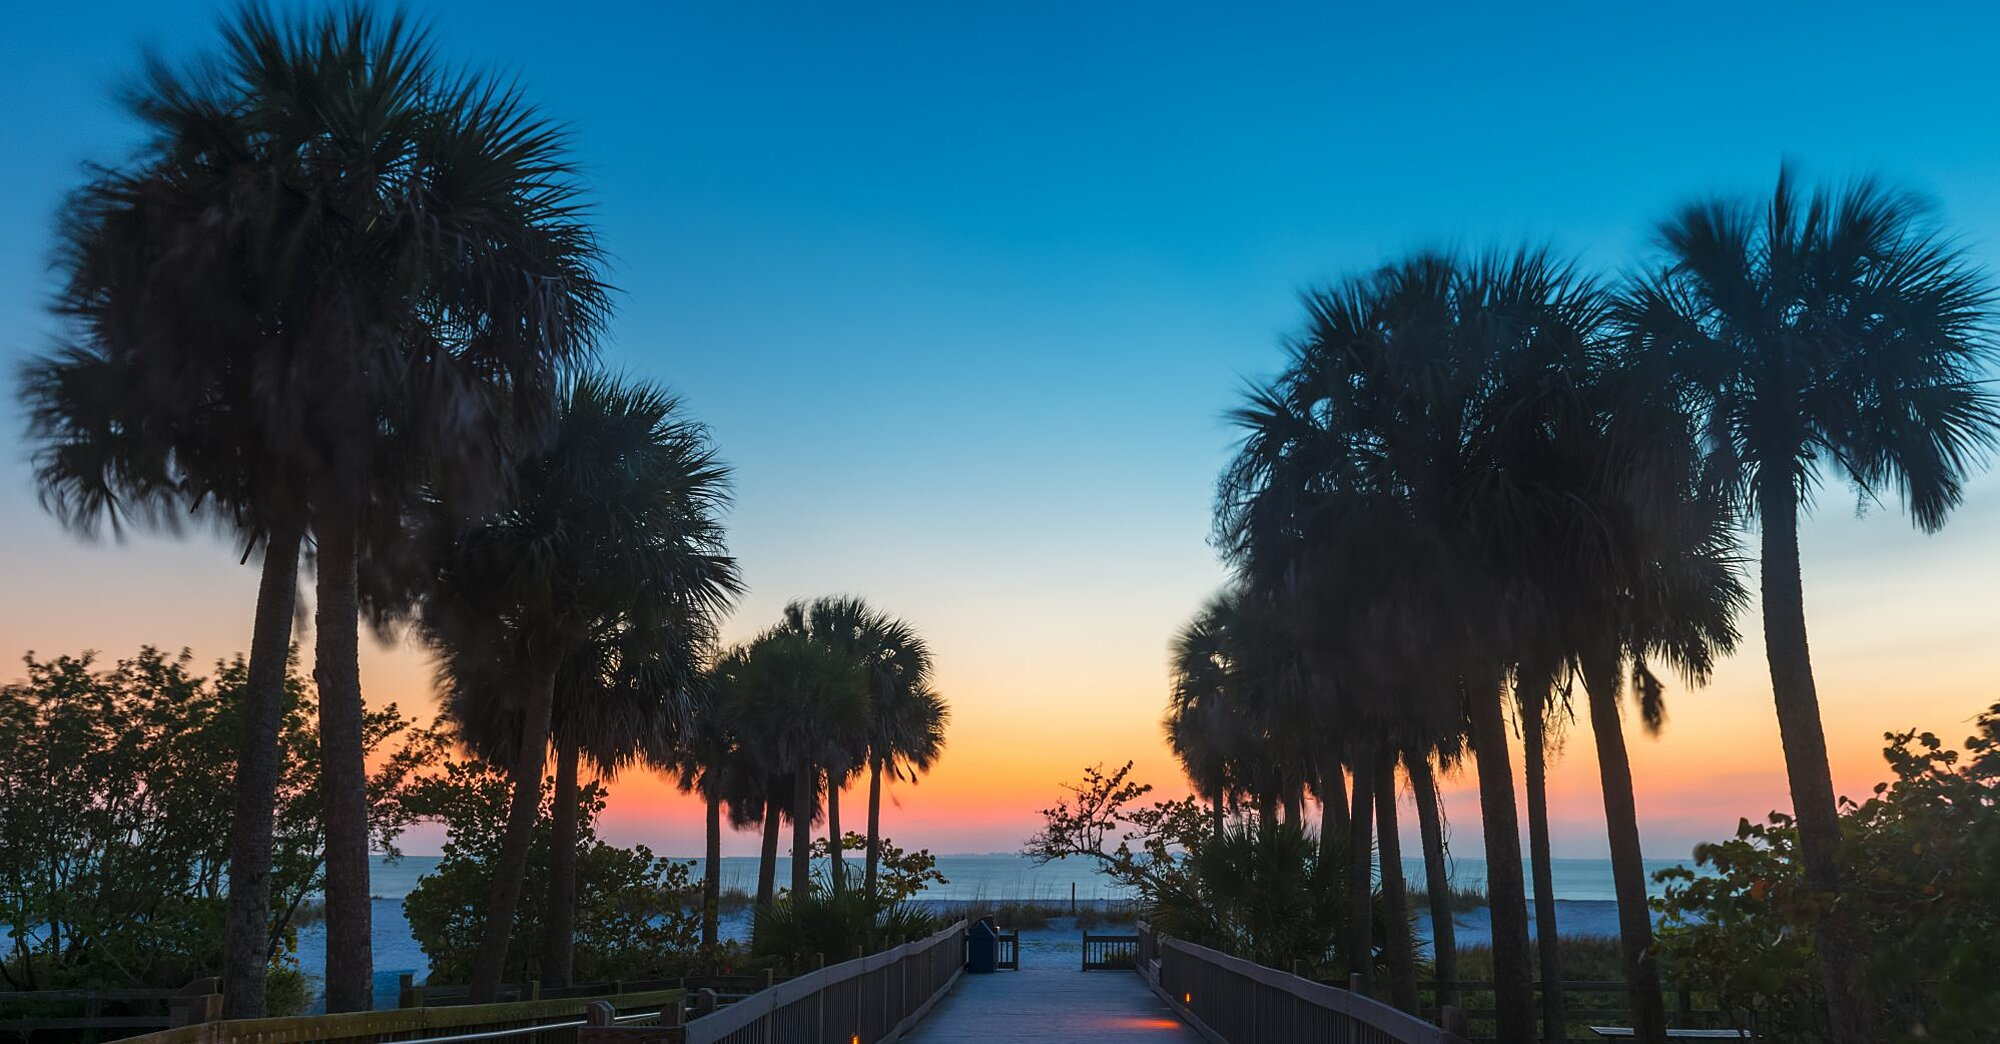 This Southern City Was Just Crowned the Best Place to Retire in the U.S.